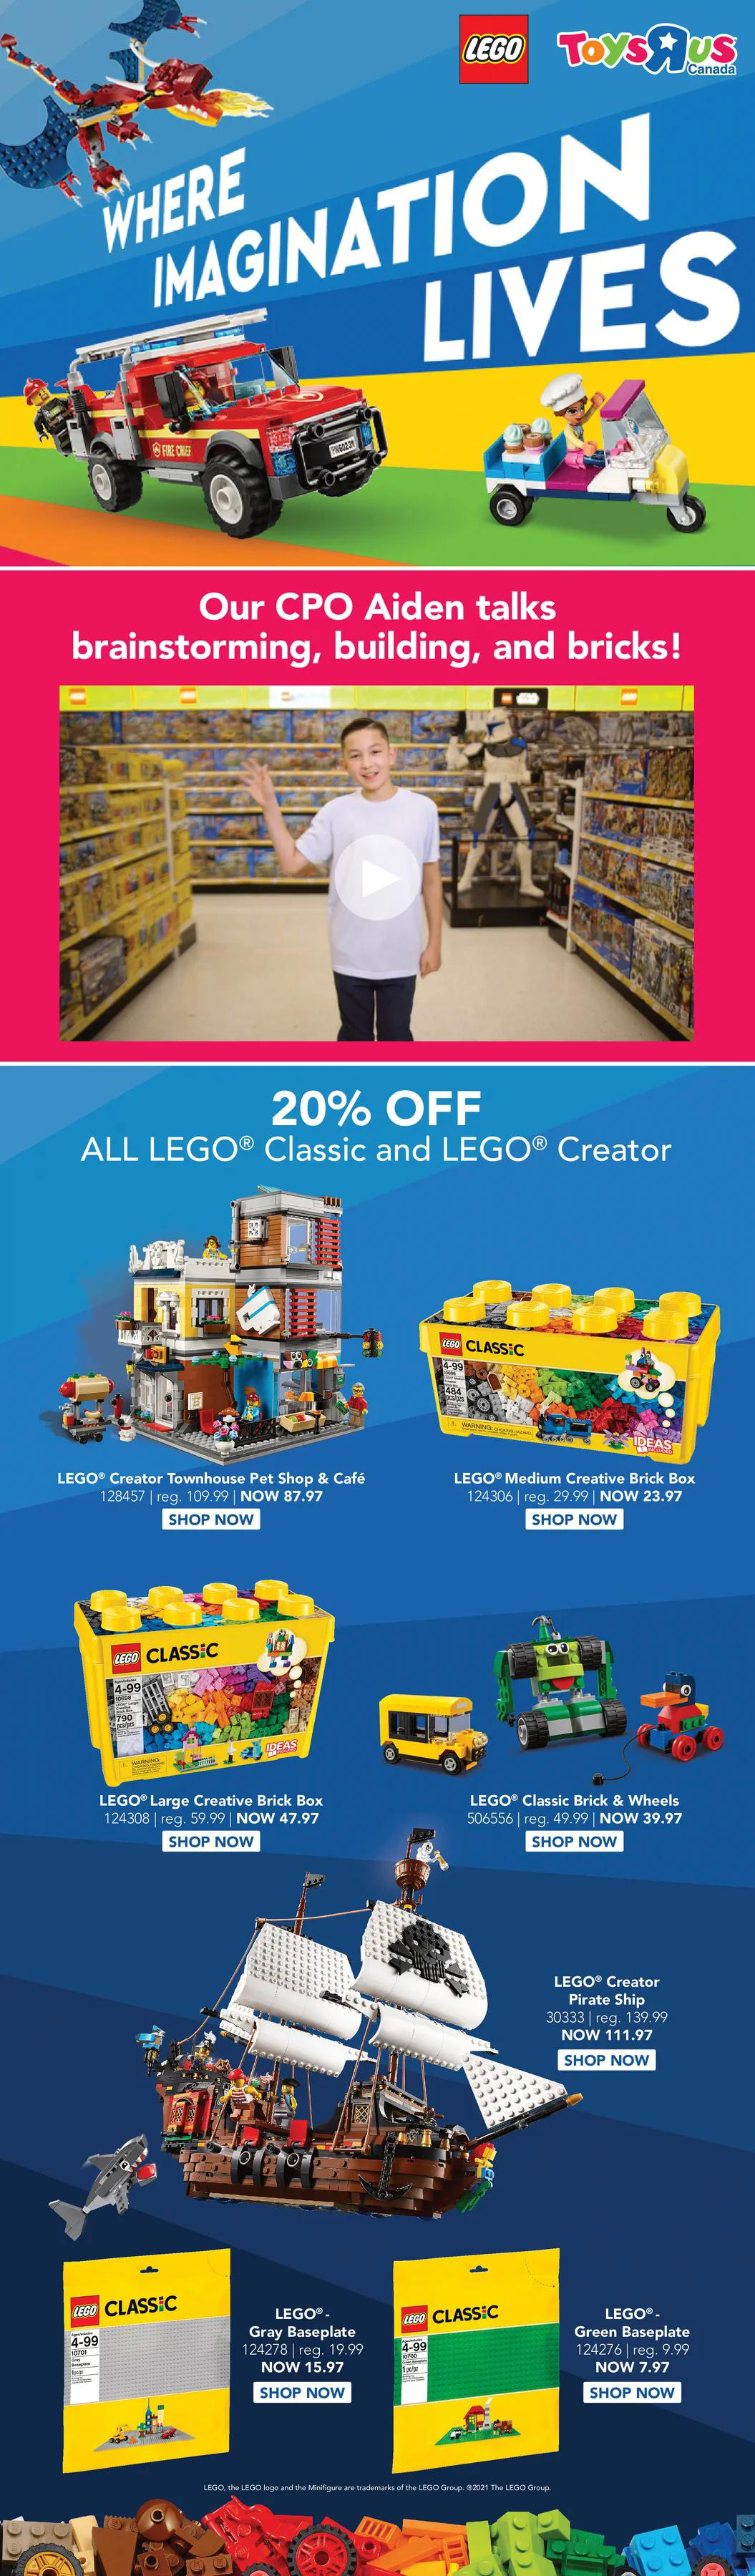 Toys 'R' Us - Weekly Flyer Specials - Page 21